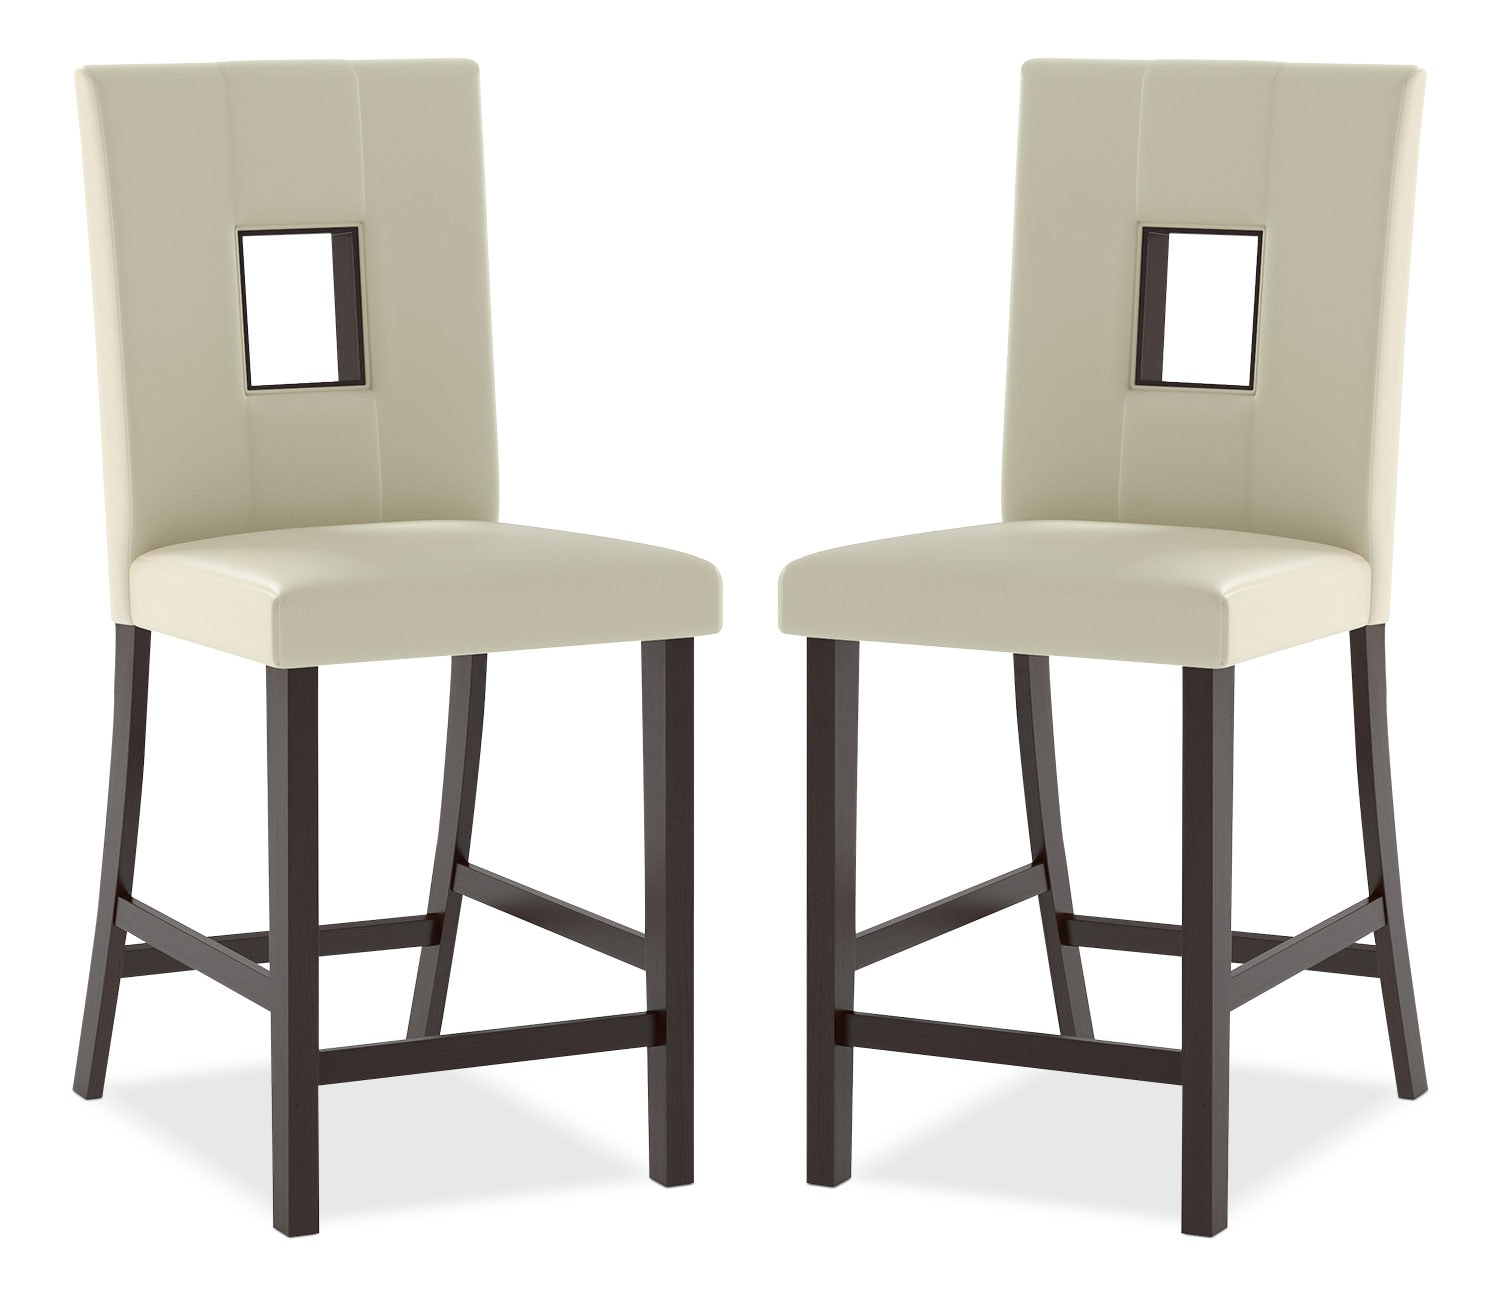 Counter Height White Dining Set : ... Furniture - Bistro Counter-Height Dining Chair, Set of 2 ? White